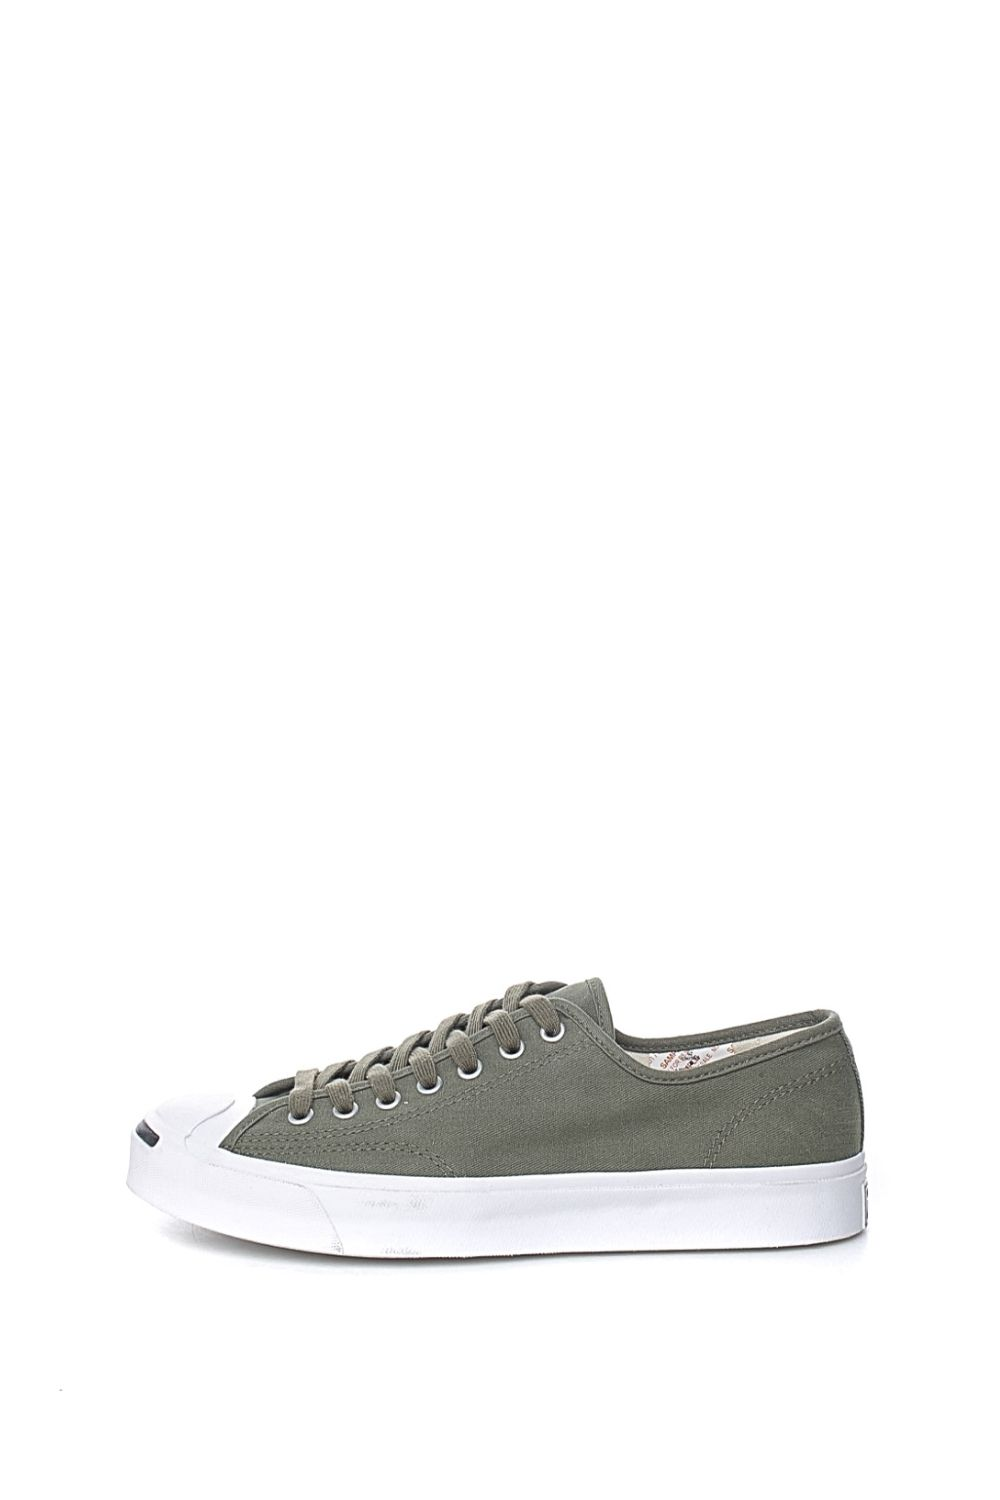 CONVERSE – Unisex sneakers CONVERSE Jack Purcell Gold Standard χακί